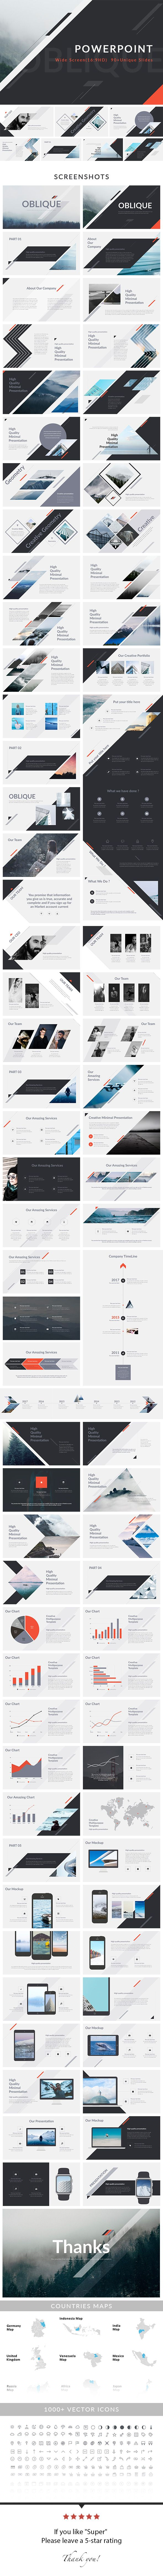 Oblique powerpoint presentation template powerpoint oblique powerpoint presentation template toneelgroepblik Image collections